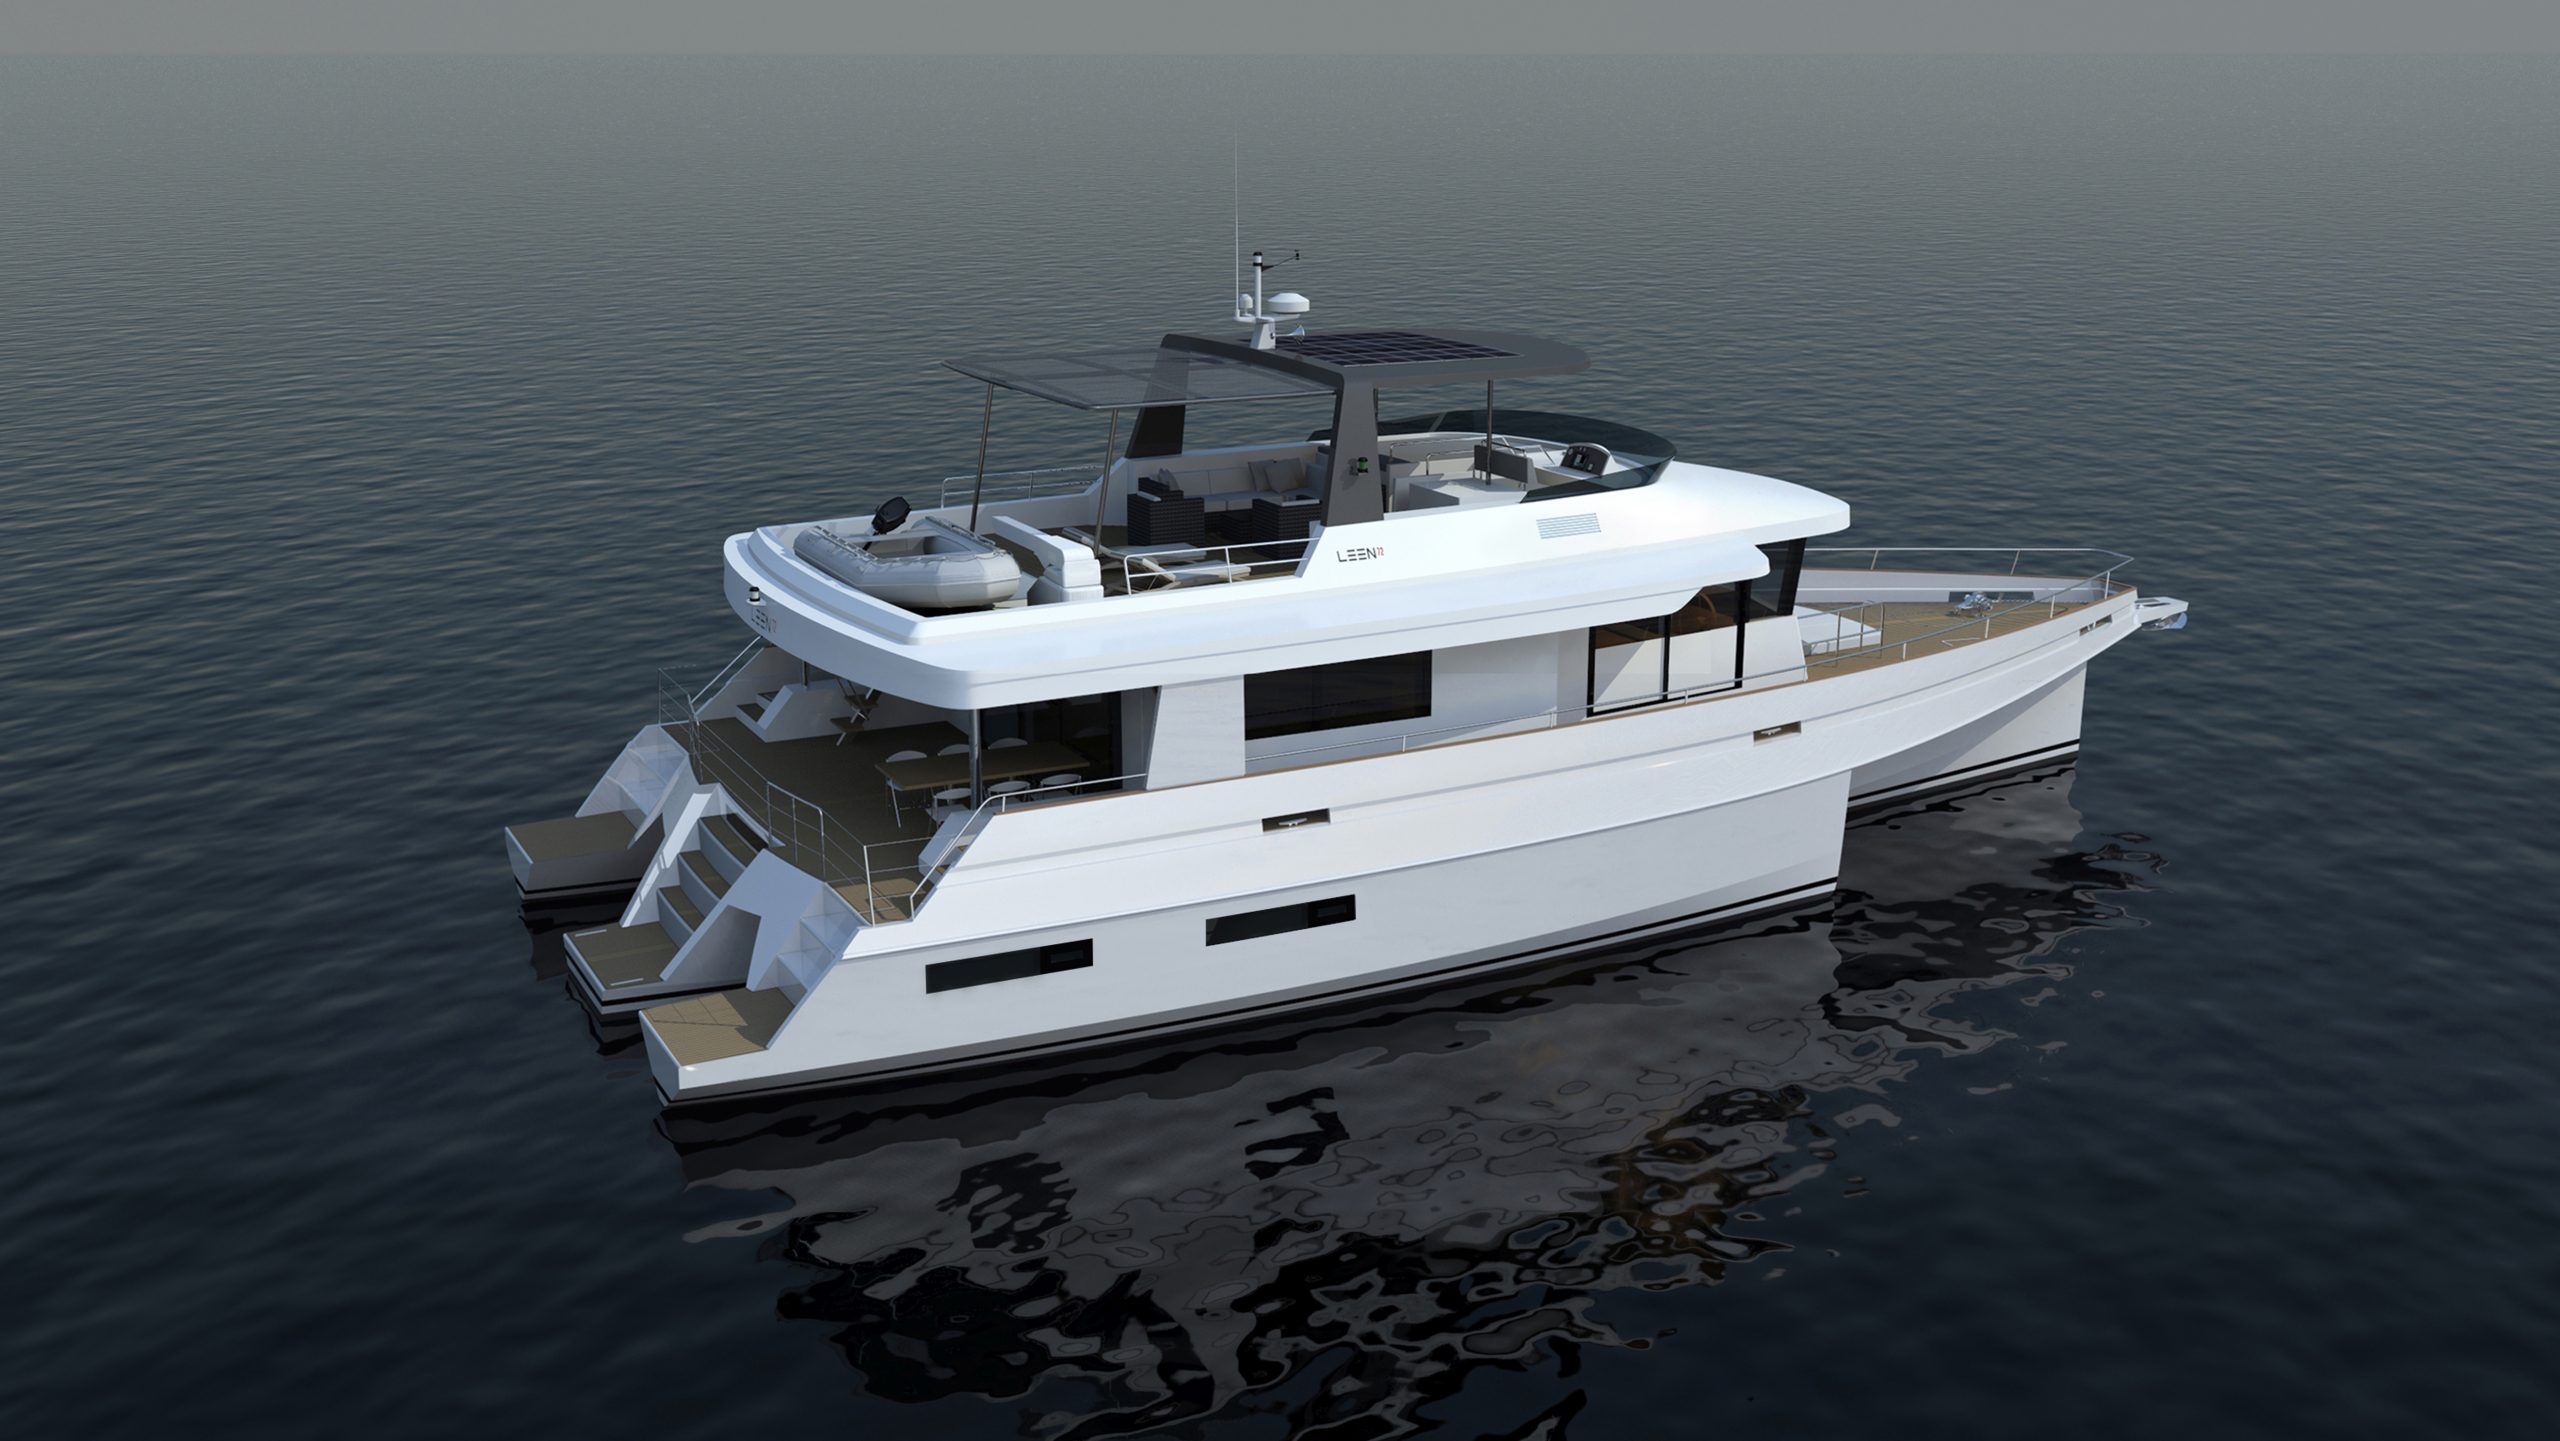 LEEN-TRIMARANS chooses a hybrid propulsion solution 5